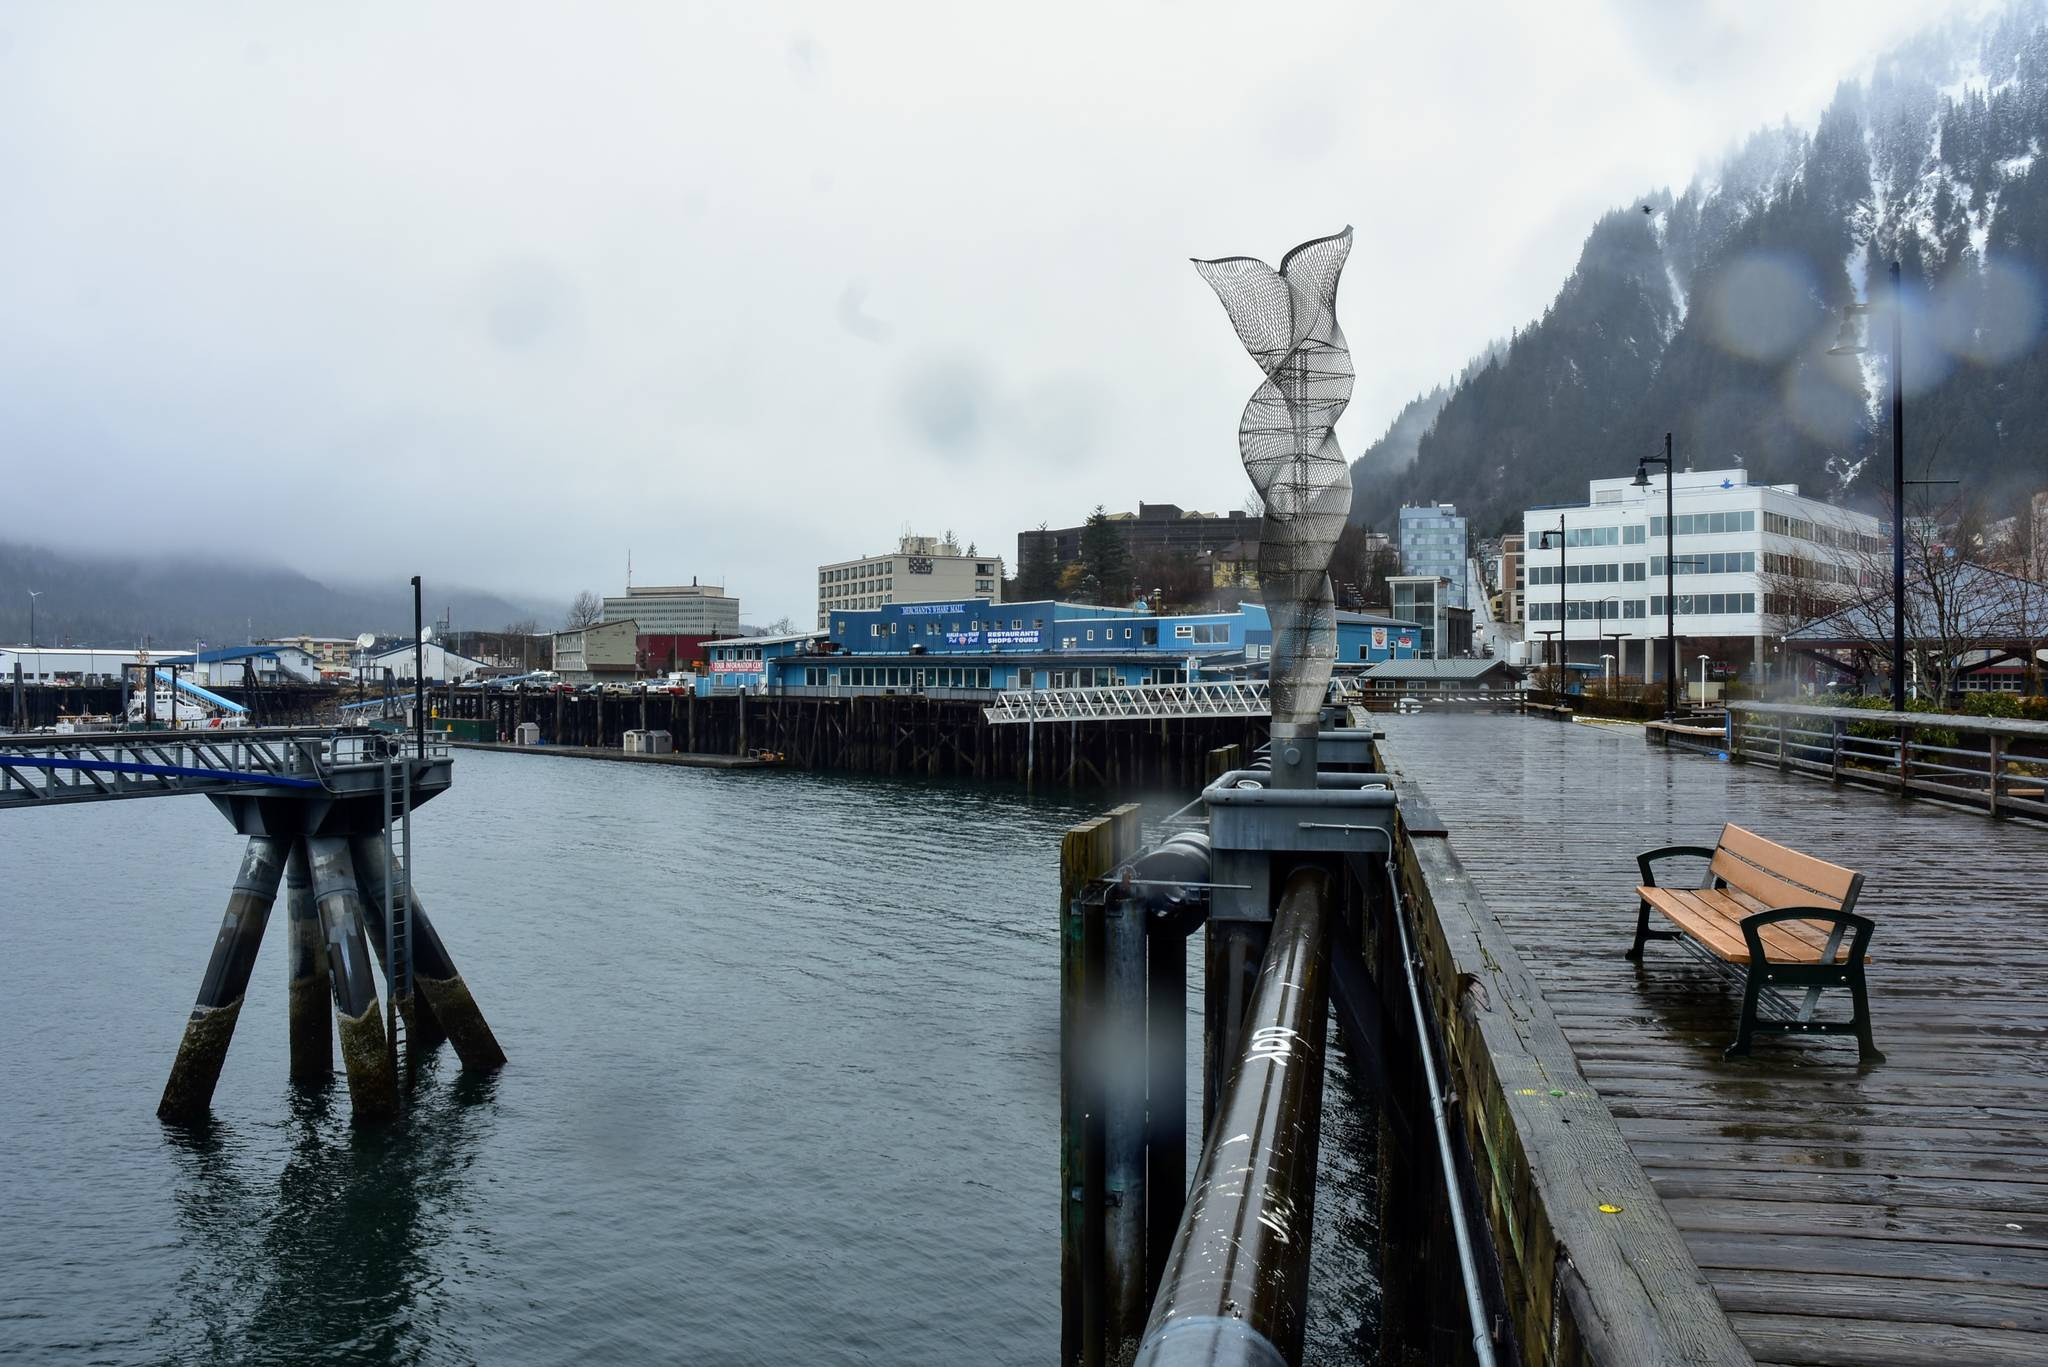 Juneau's downtown waterfront sits empty on Monday, April 5, 2021. In a typical year businesses would be getting ready for the flood of local tourists but with the COVID-19 pandemic still ongoing, Alaska's cruise ship season remains uncertain. (Peter Segall / Juneau Empire)